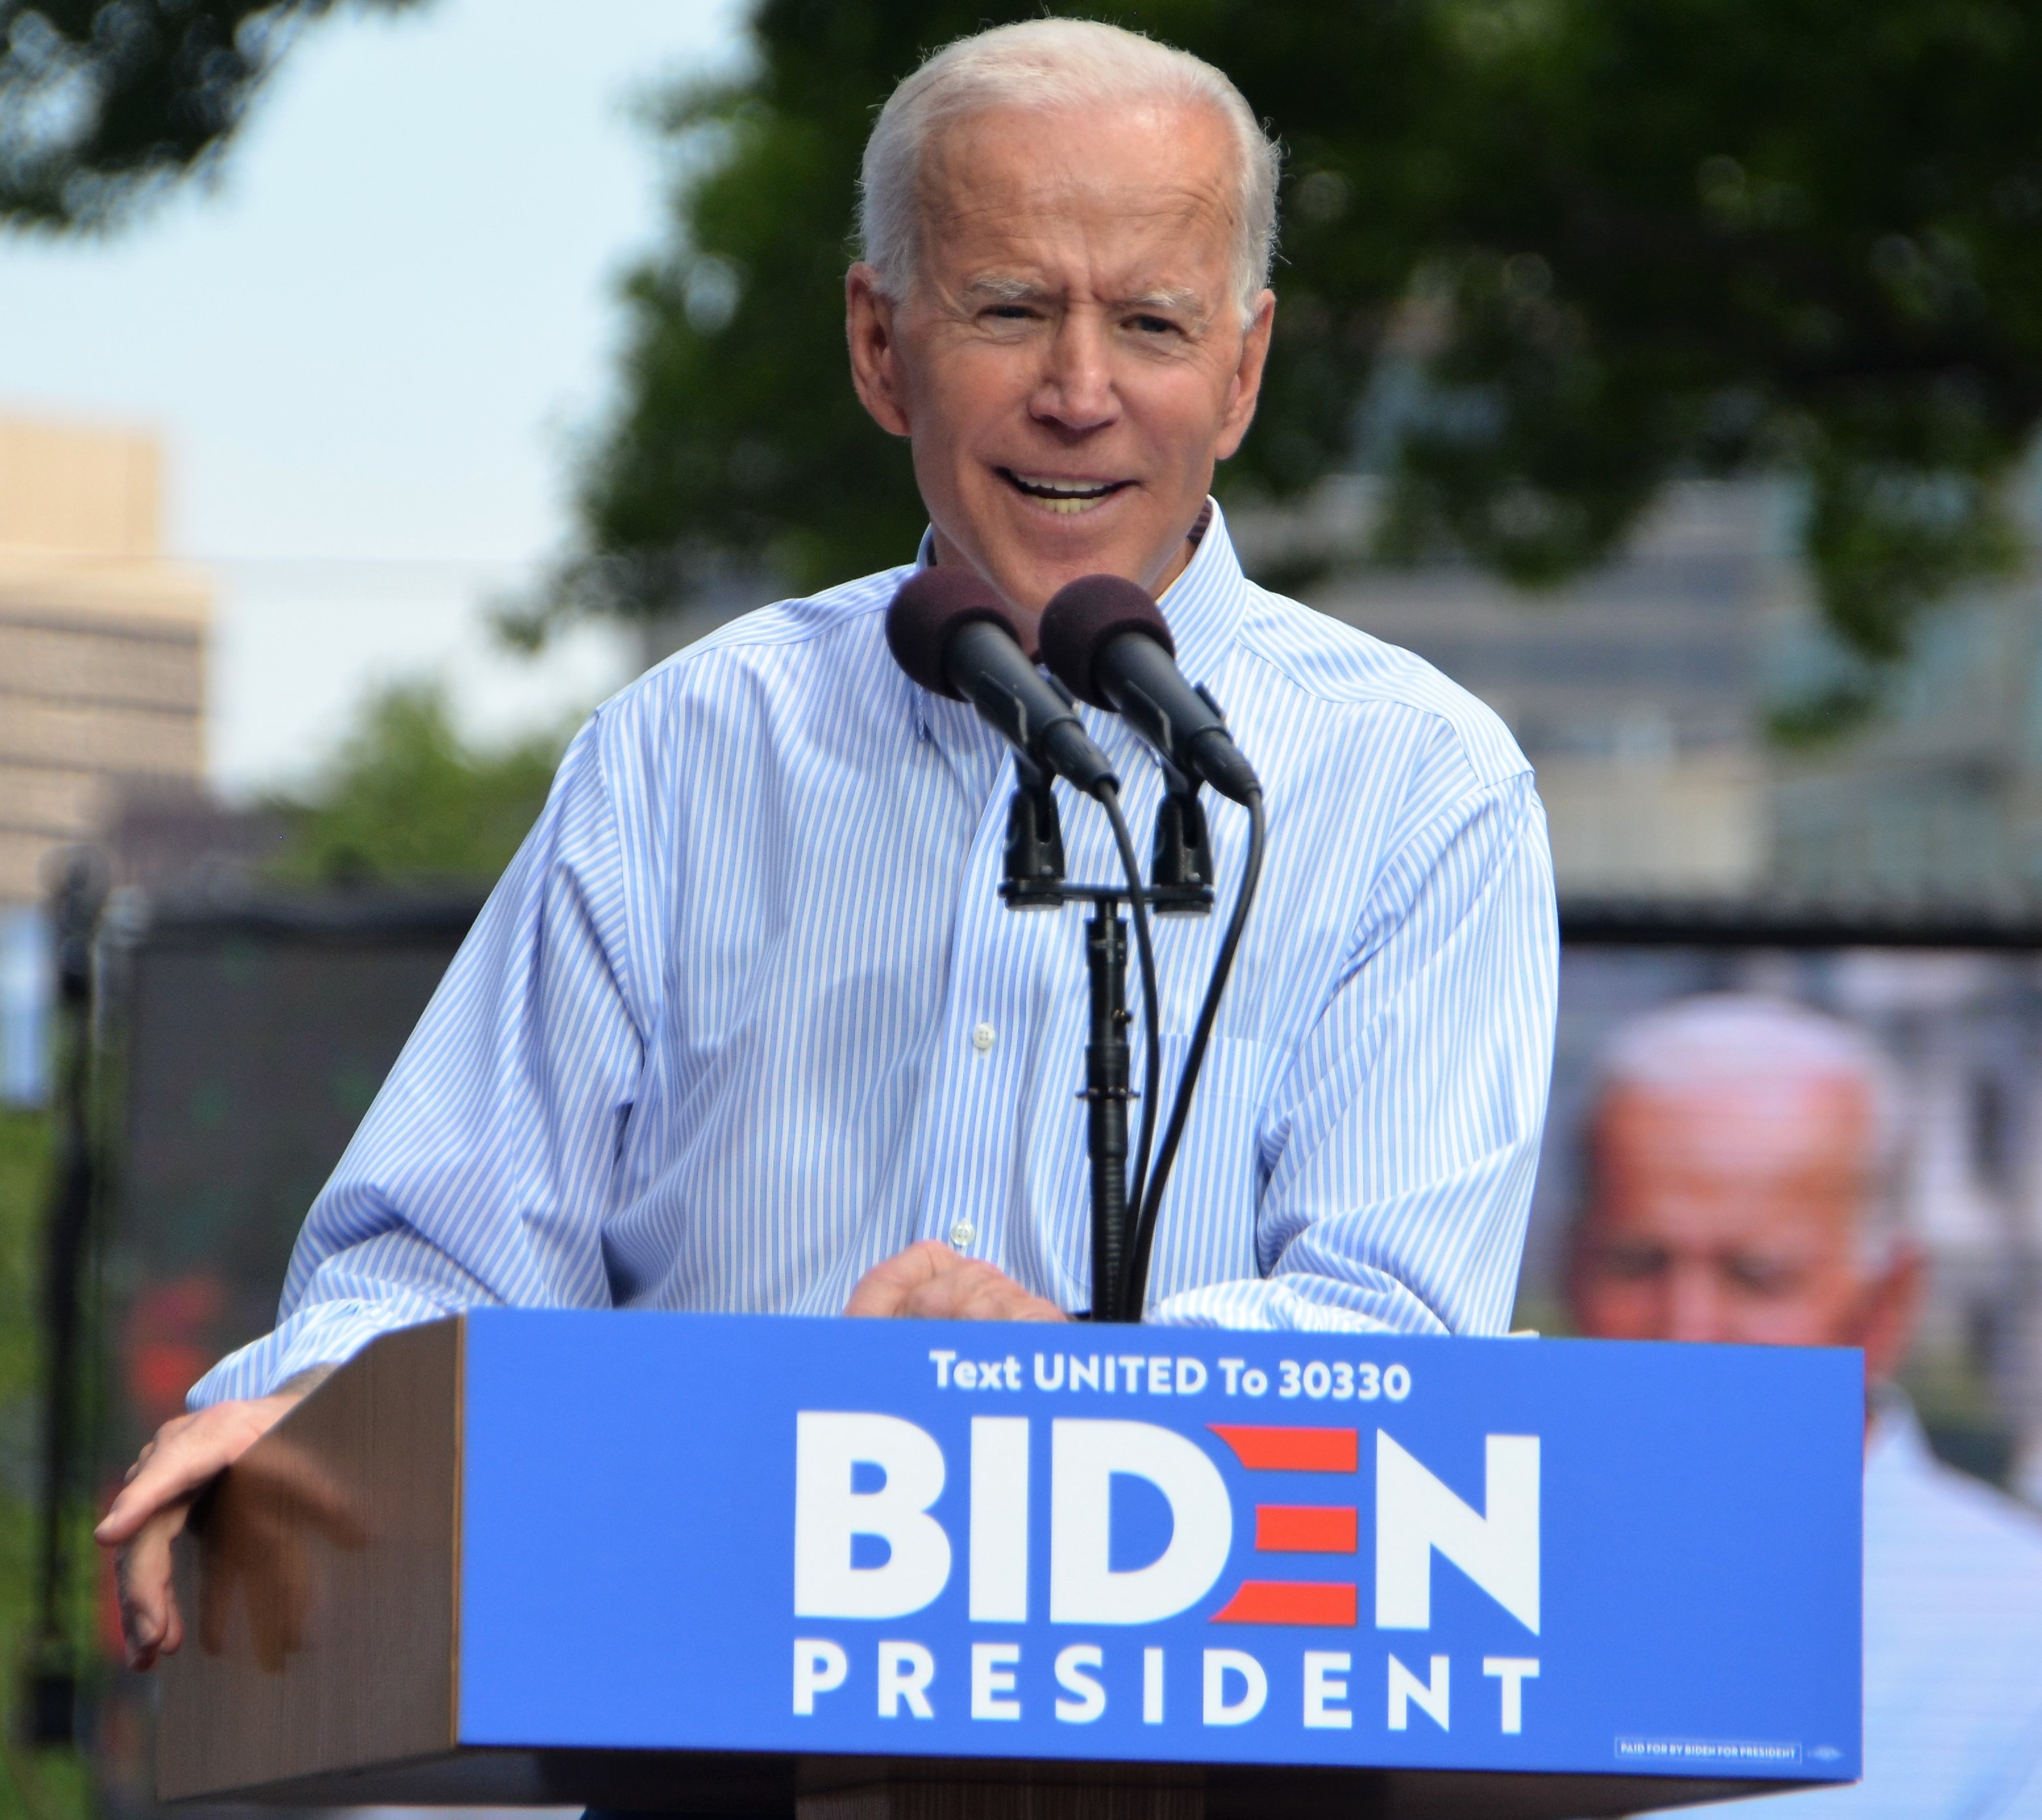 Study: Biden's Economic Policy Would Reduce Median Household Income by $6,500